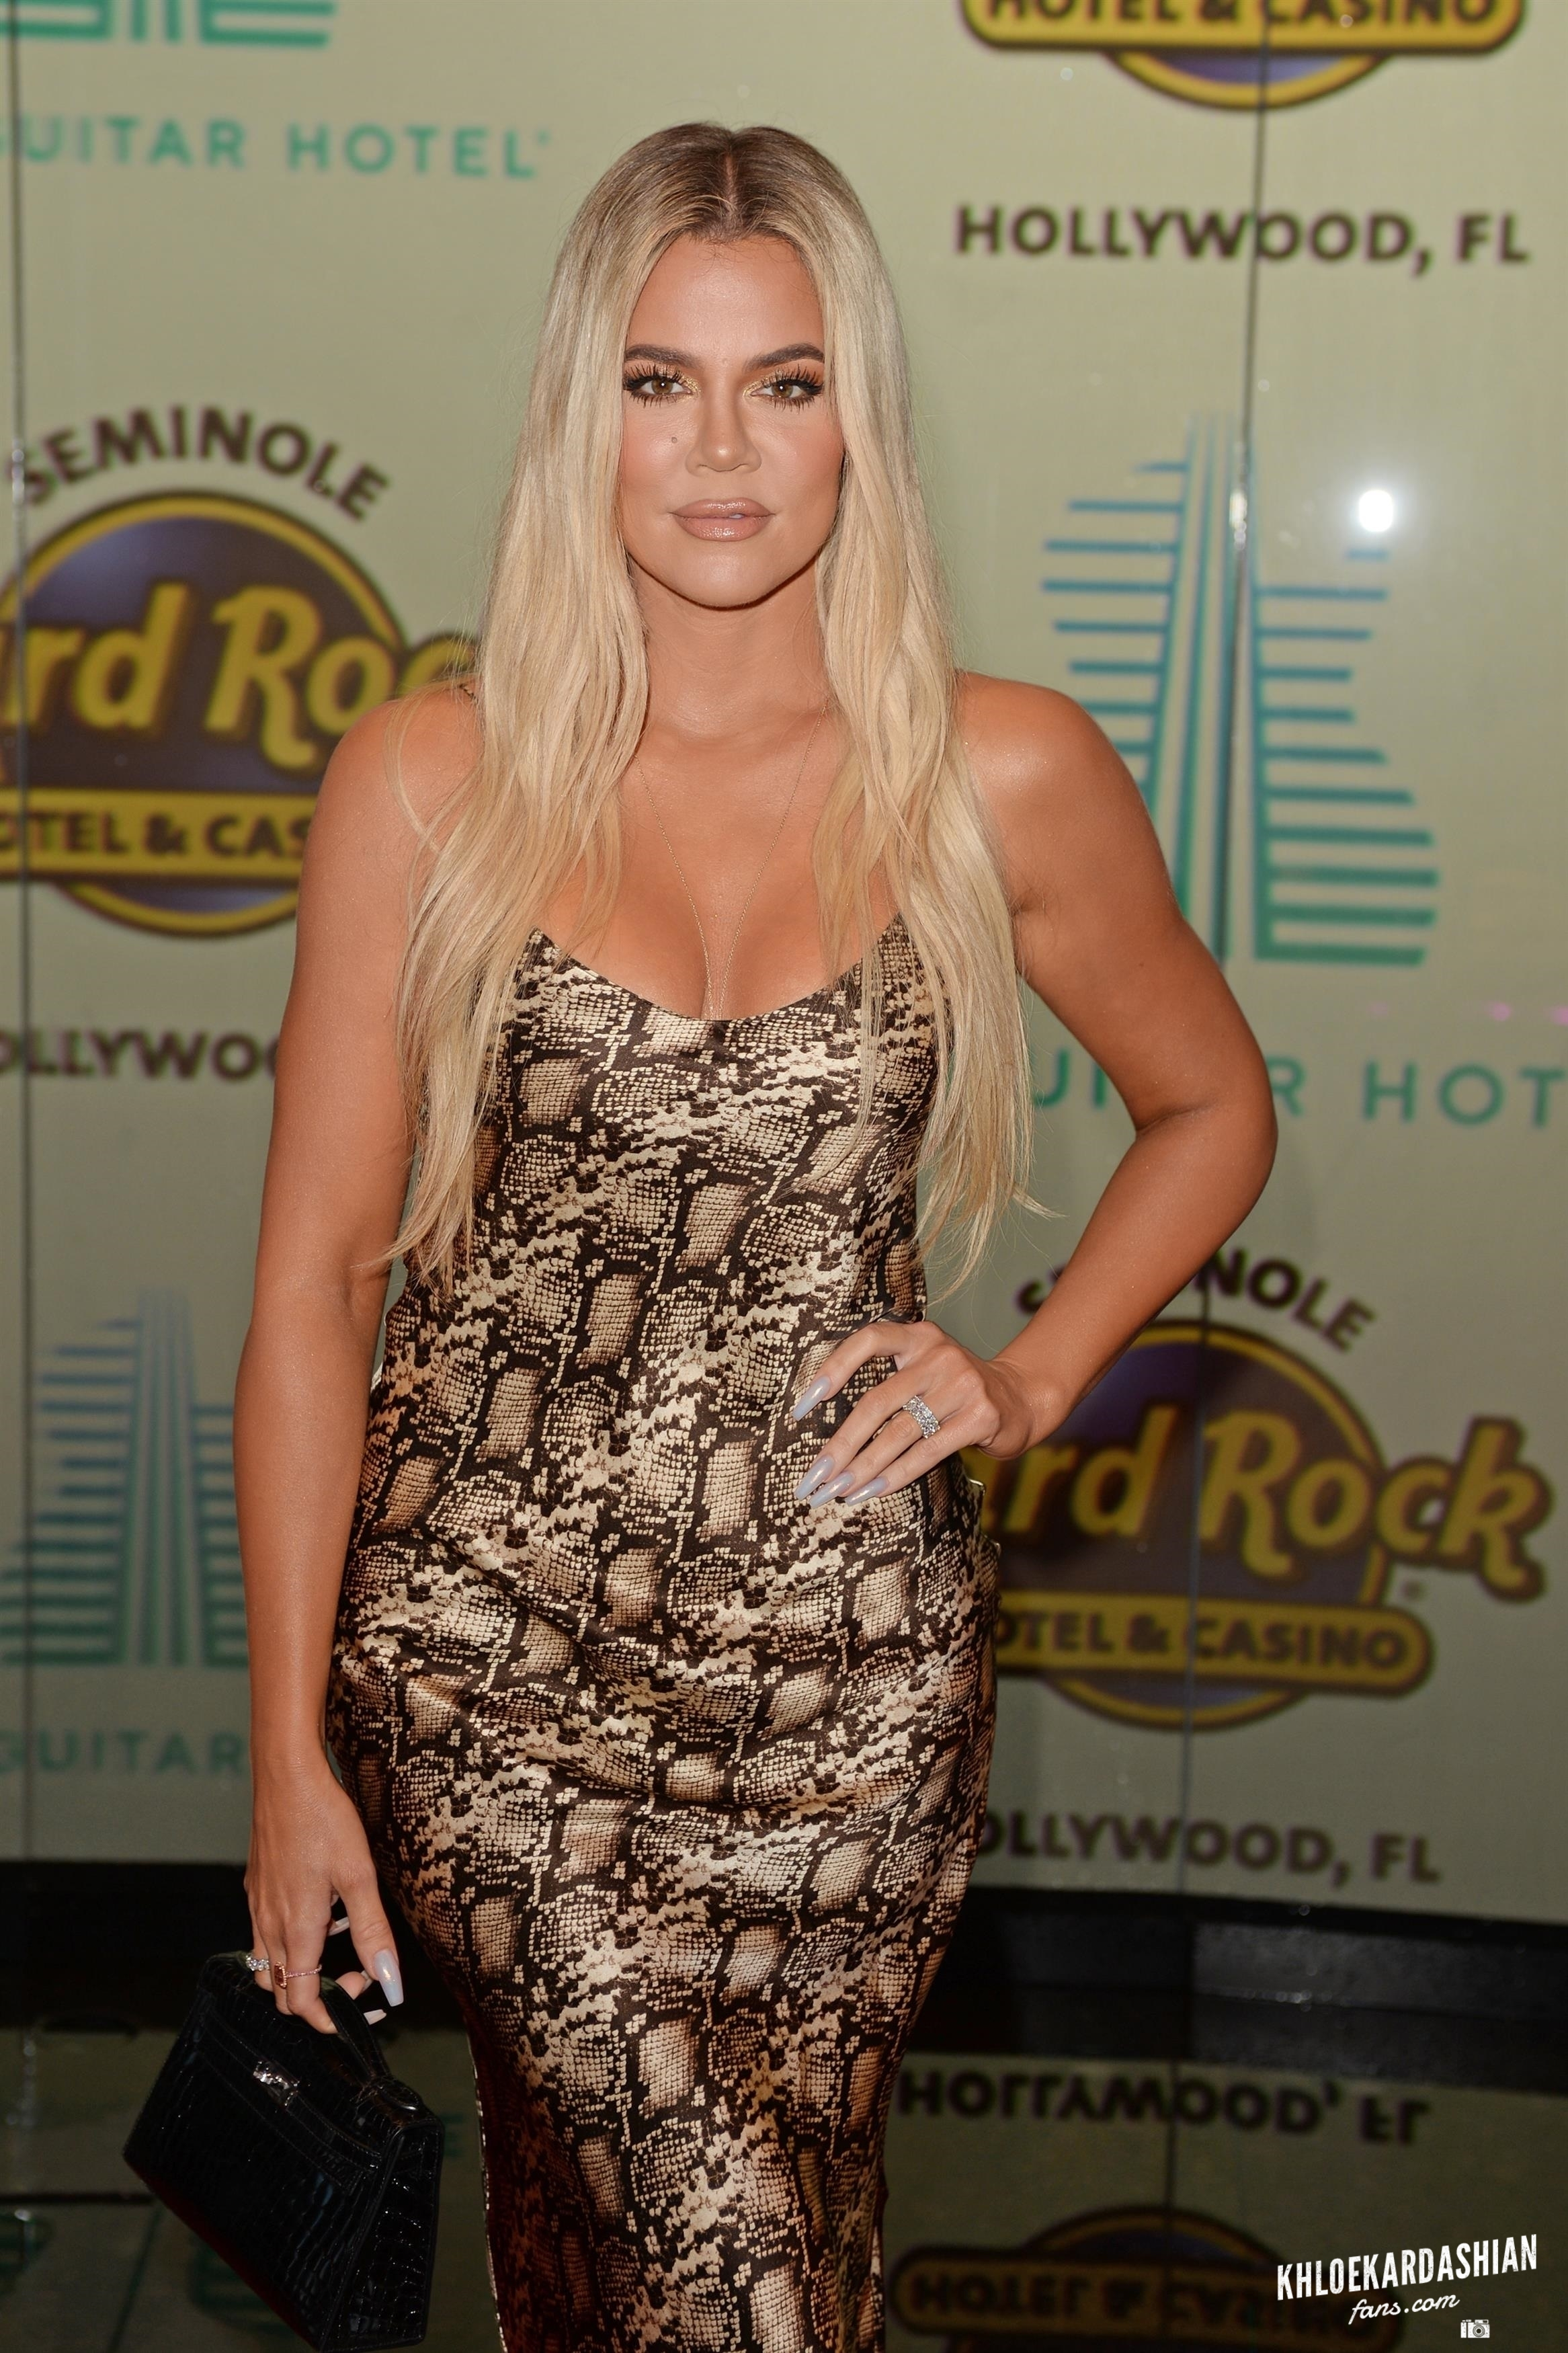 KHLOE KARDASHIAN ATTENDS AT SEMINOLE HARD ROCK HOTEL & CASINO IN MIAMI